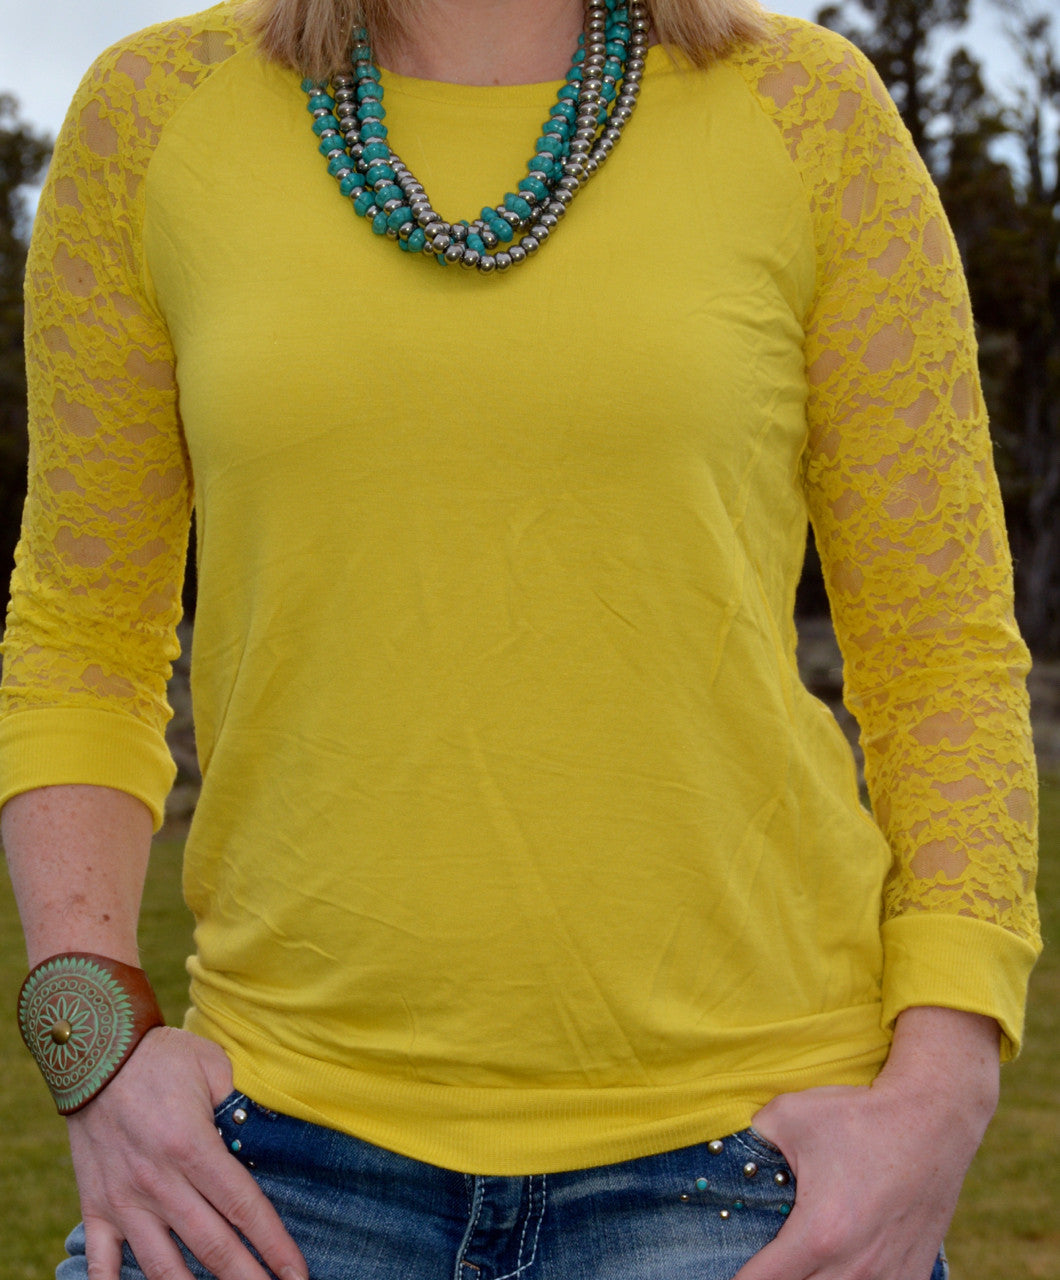 Sunny Days Lace Top - Pistol Annie's Boutique